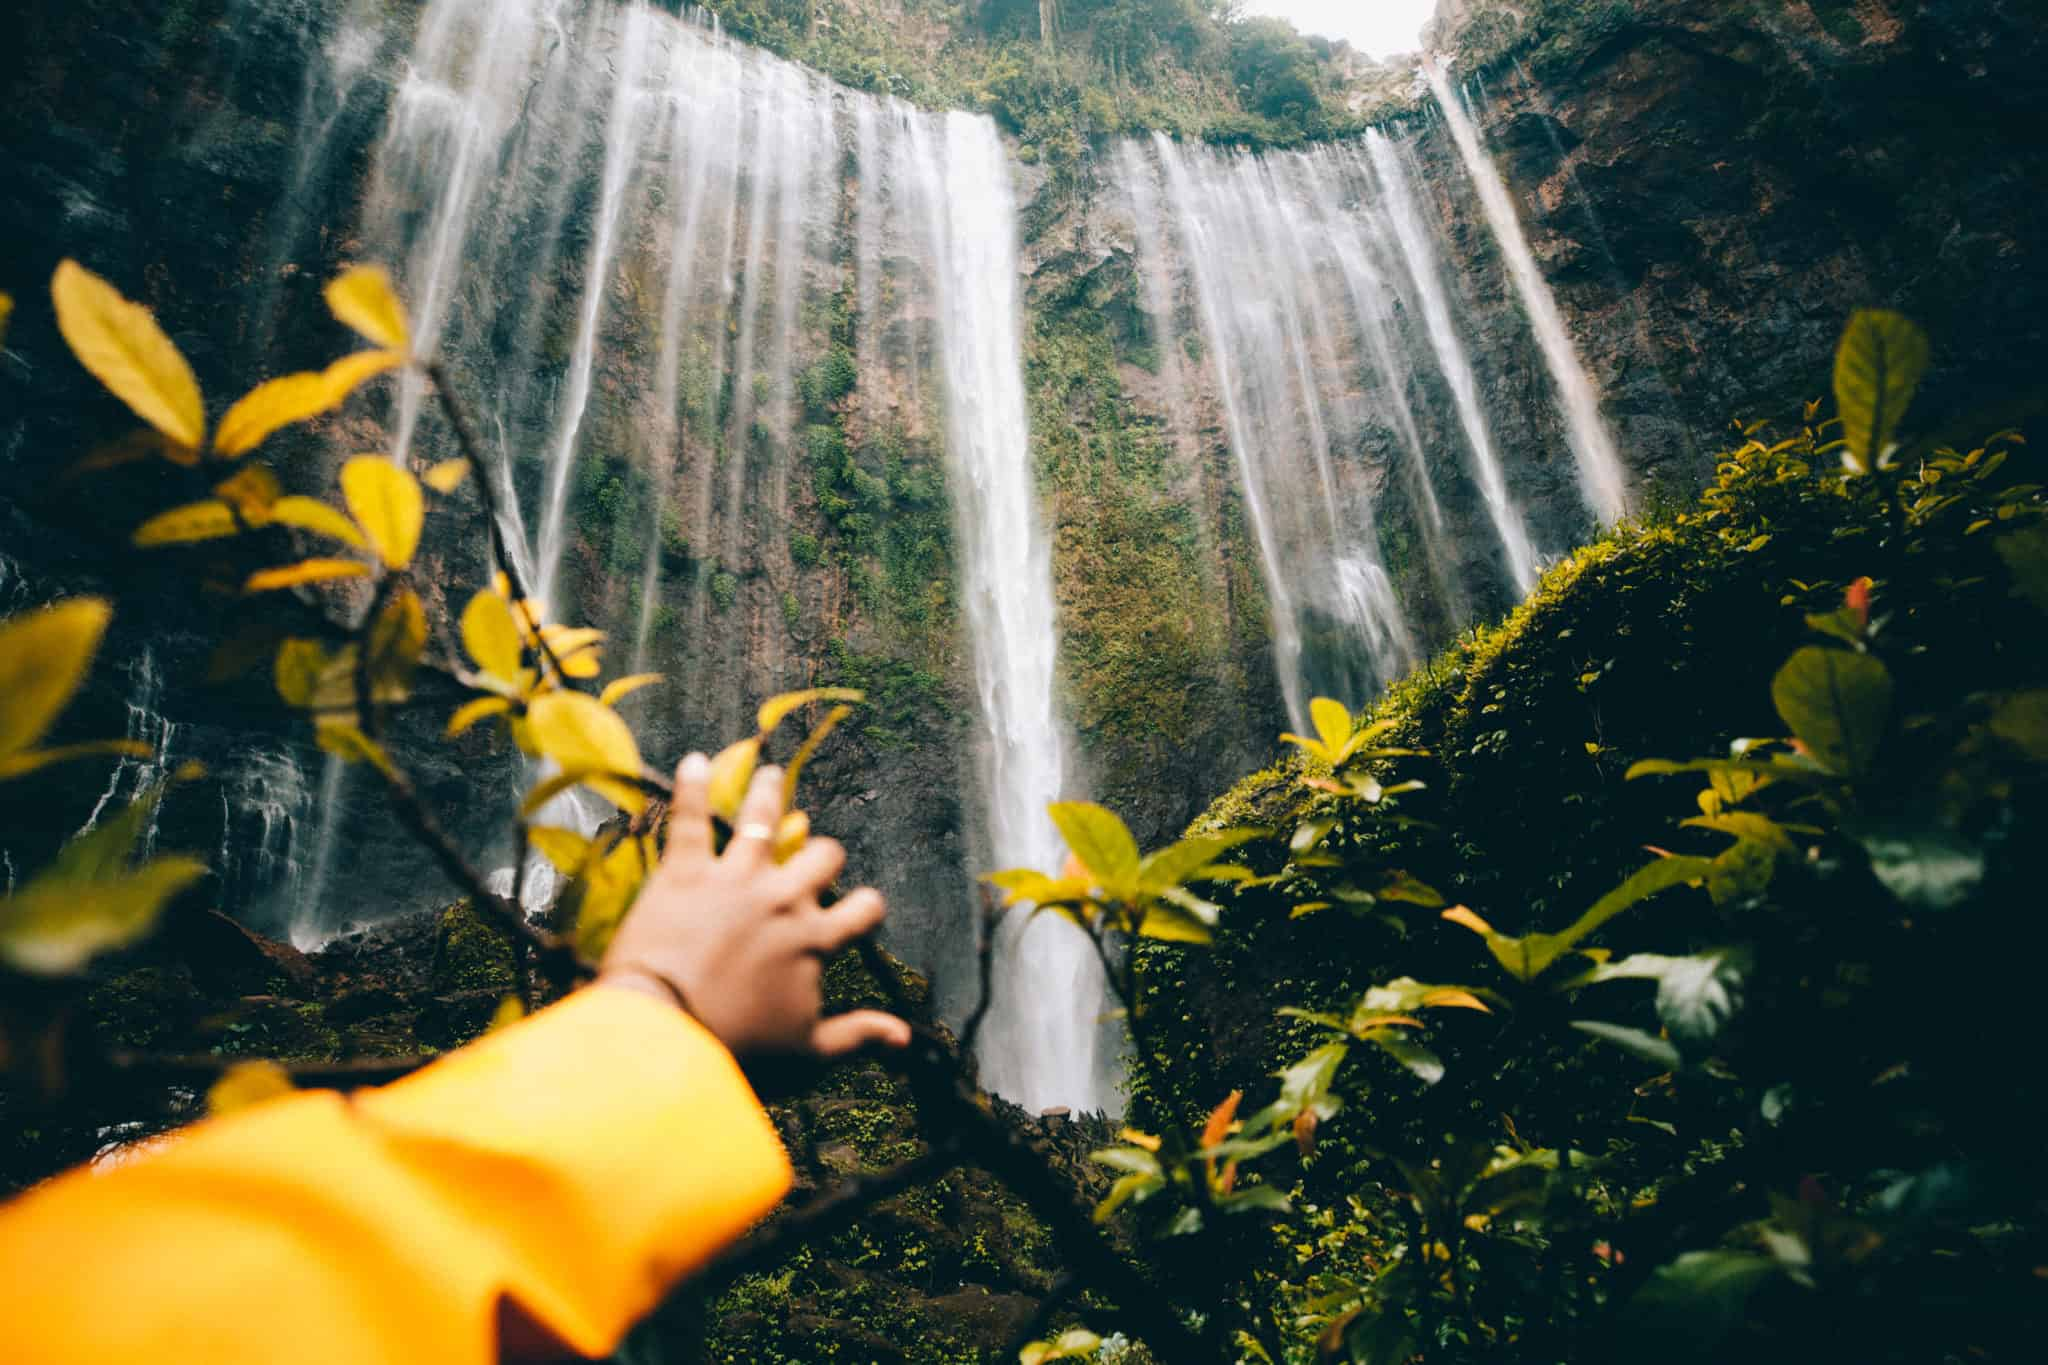 Berty peeking at Tumpak Sewu waterfall behind leaves